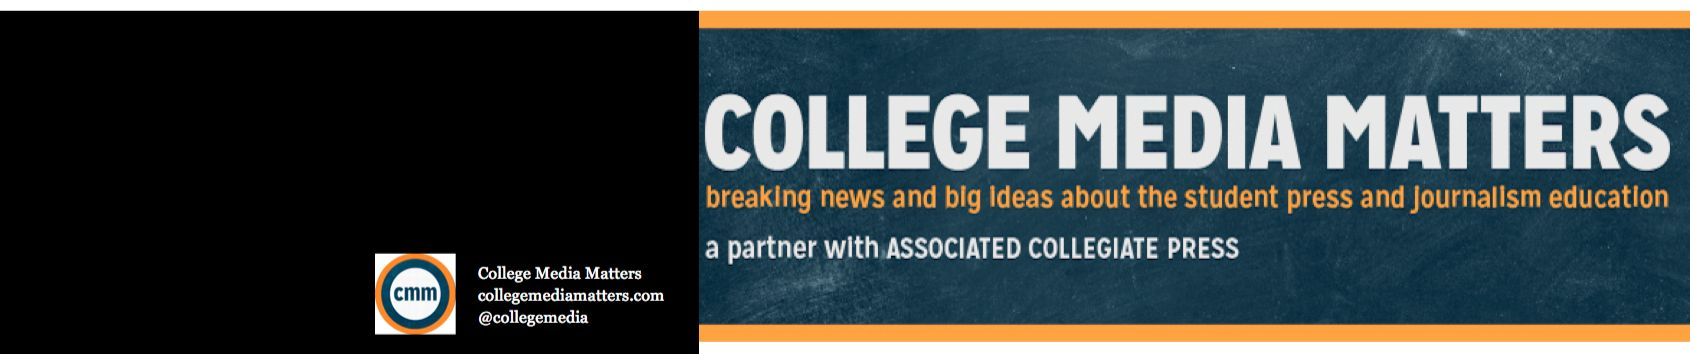 ... College Media Matters Facebook page. —. —. —